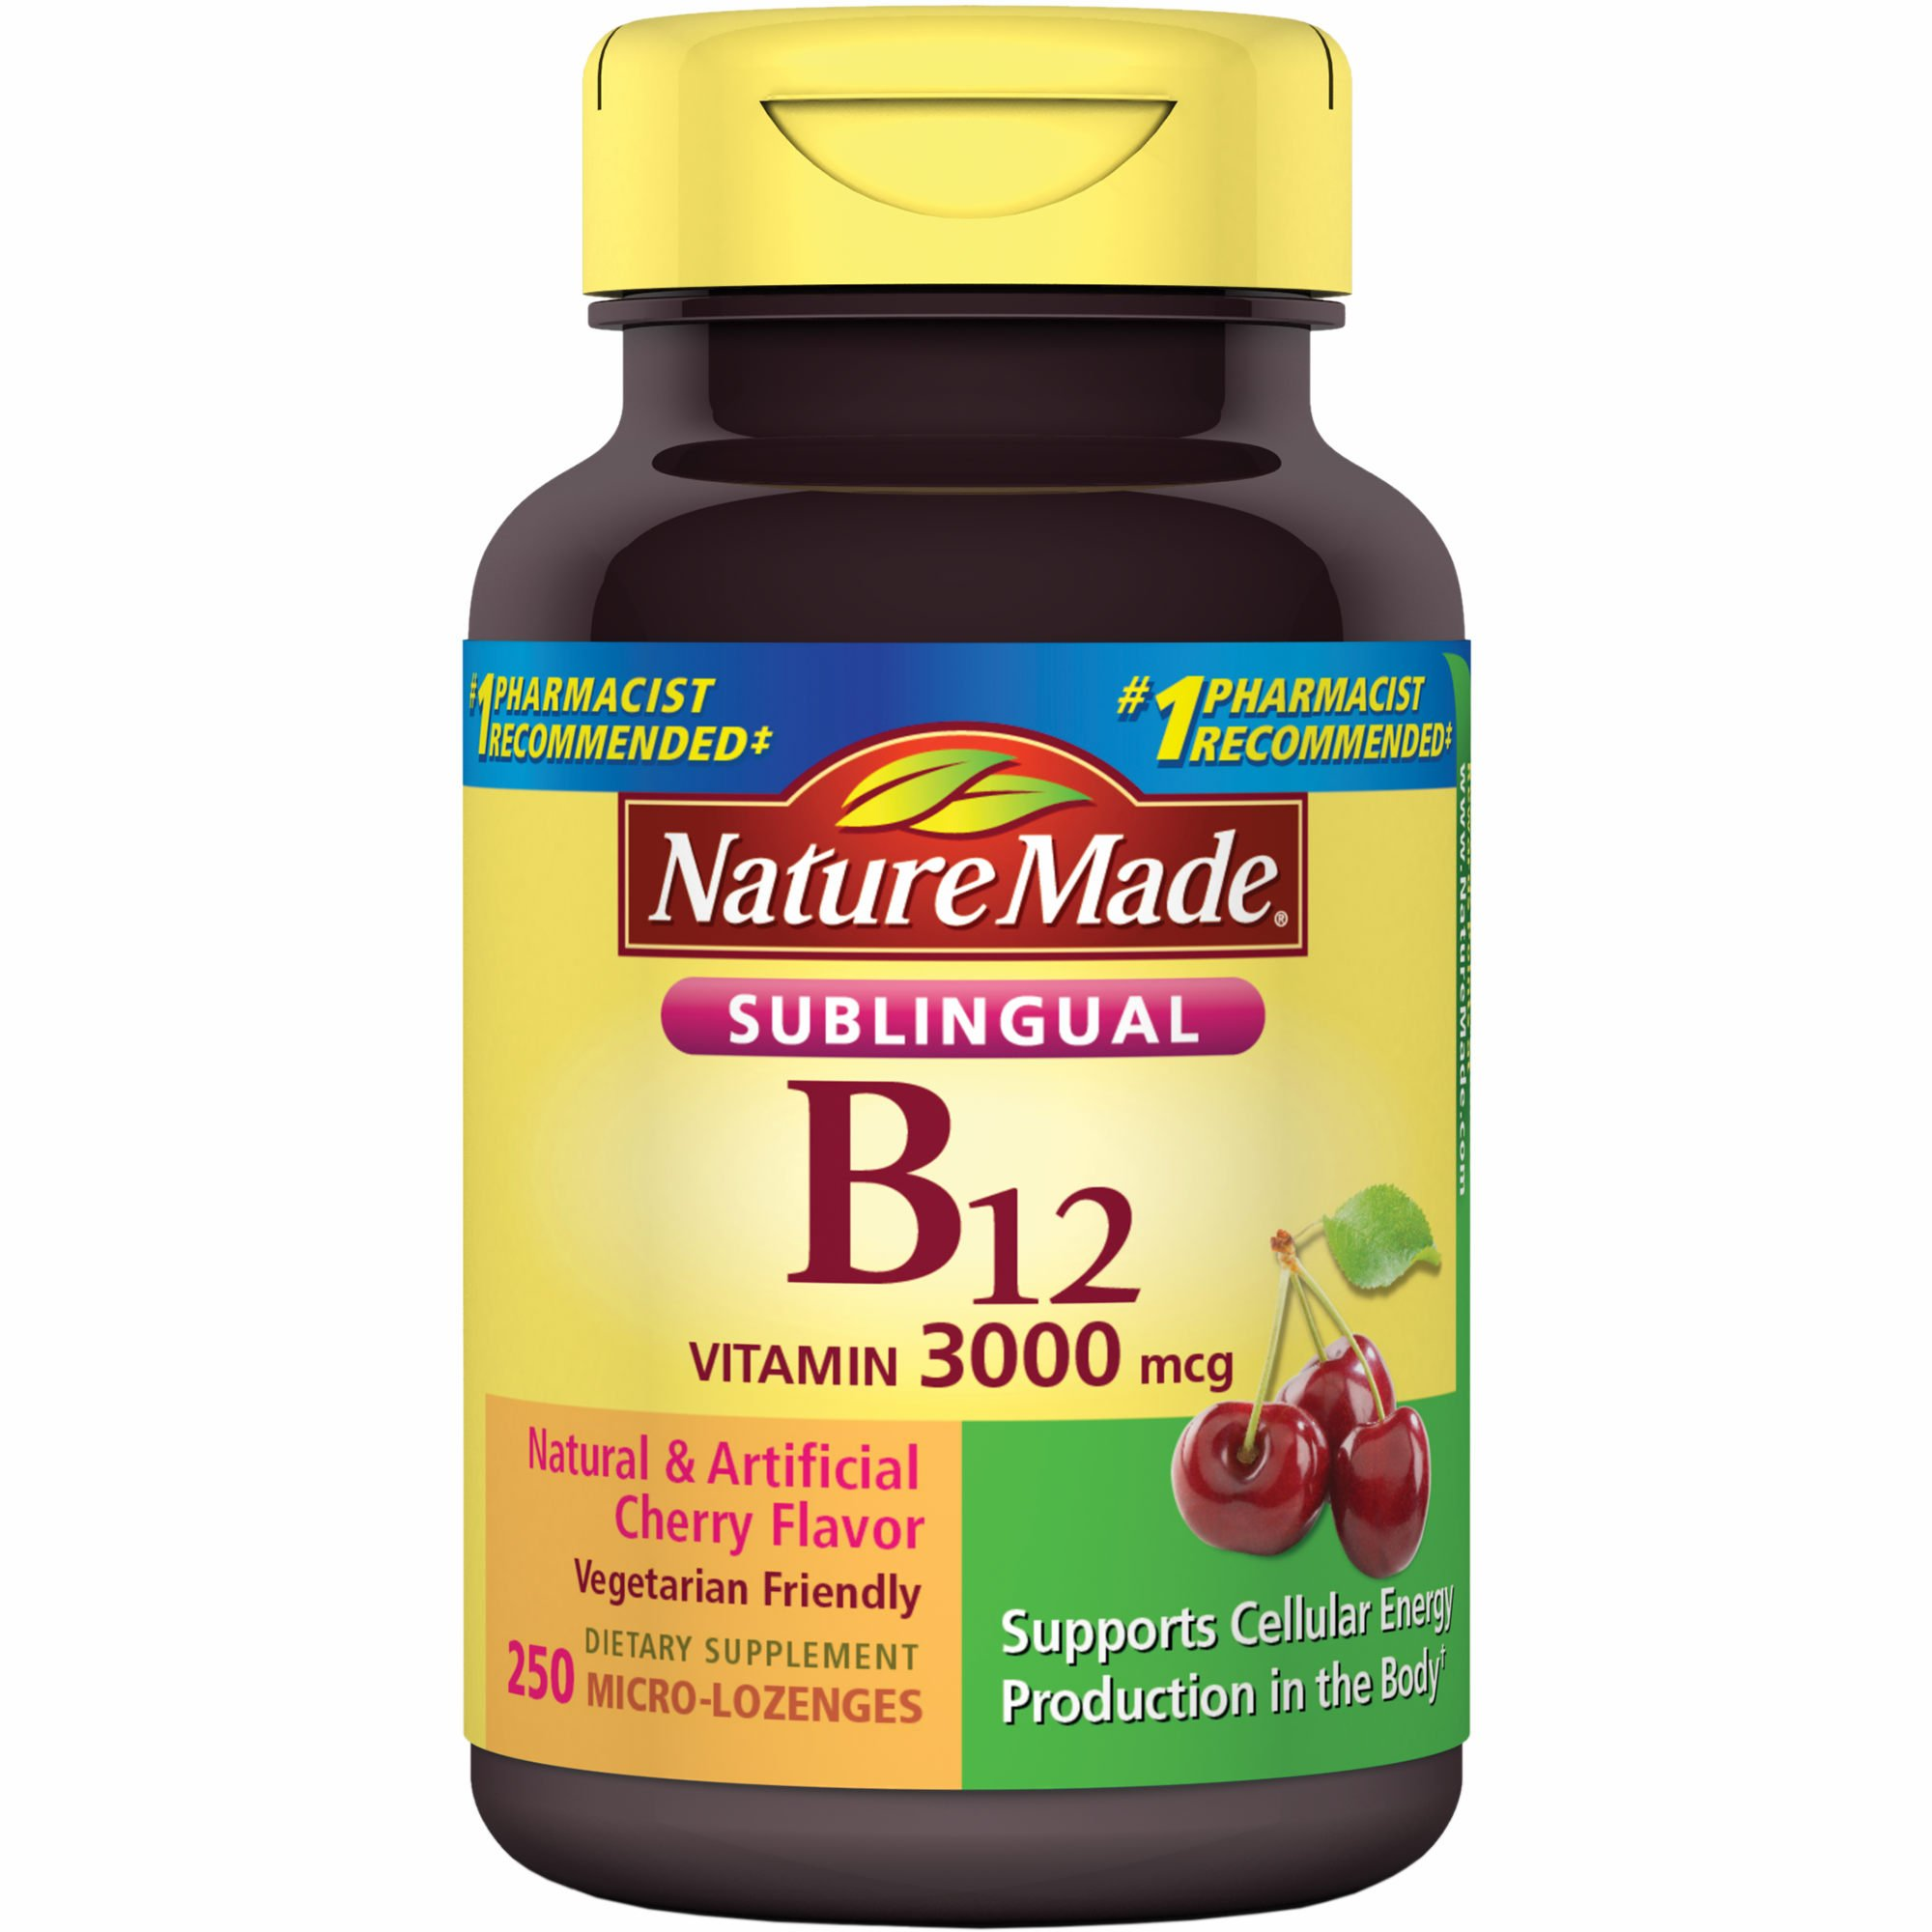 Nature Made Sublingual Vitamin B12 3000 mcg. Cherry Flavored Lozenges, 1 Pack, 250 Count ...